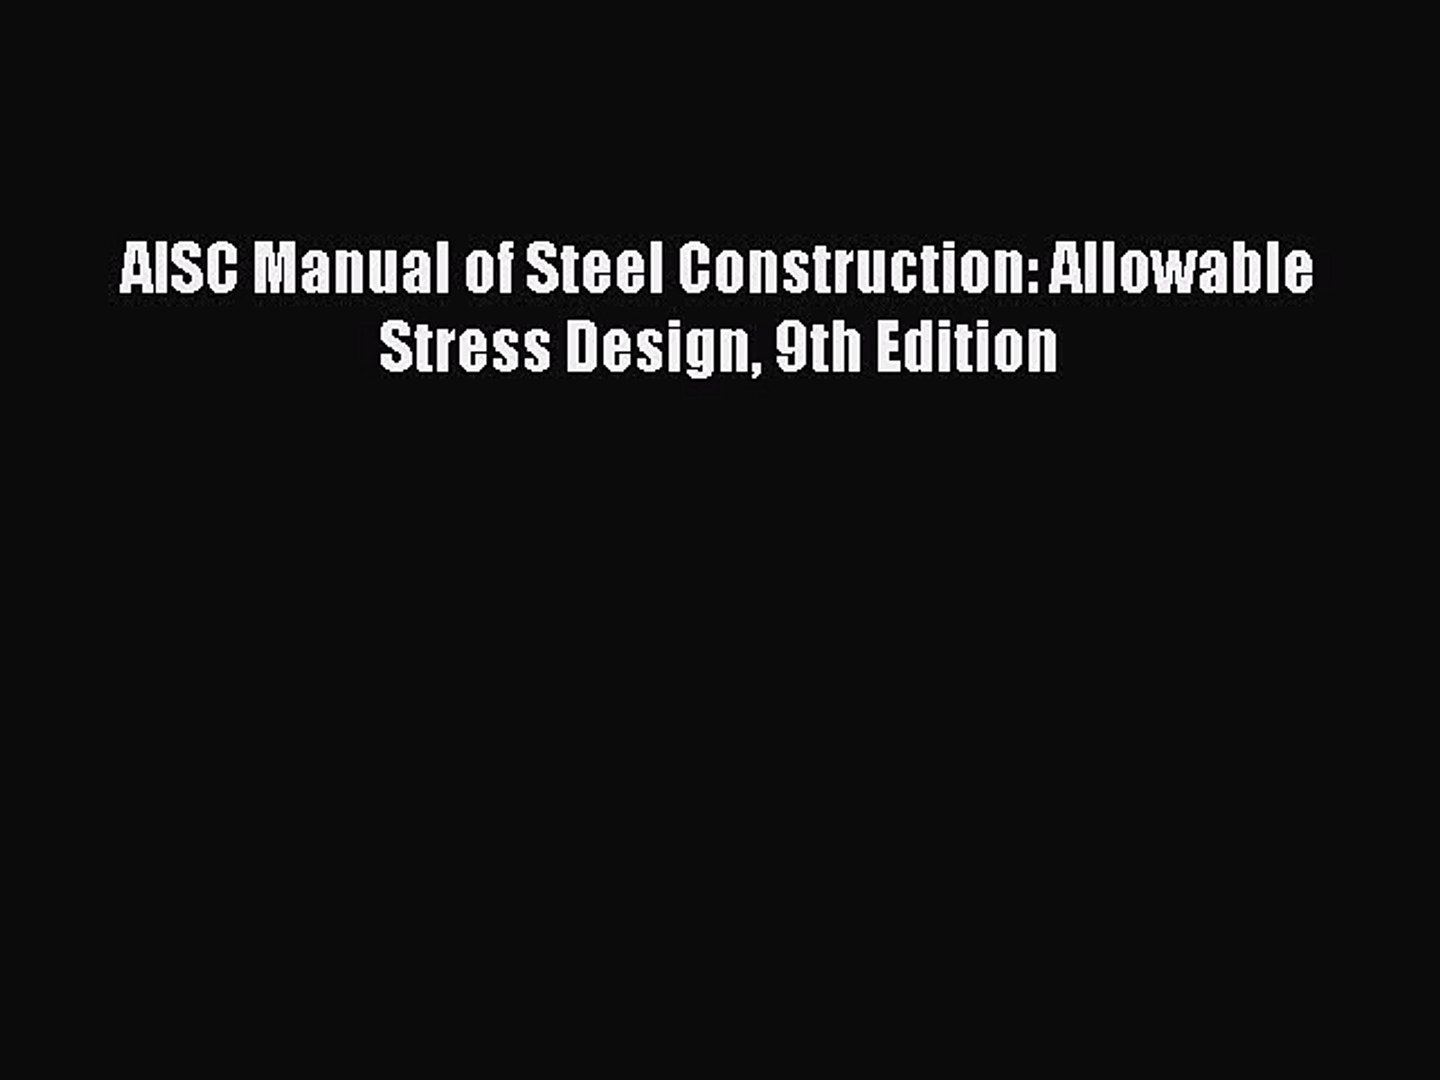 Read AISC Manual of Steel Construction: Allowable Stress Design 9th Edition  PDF Online